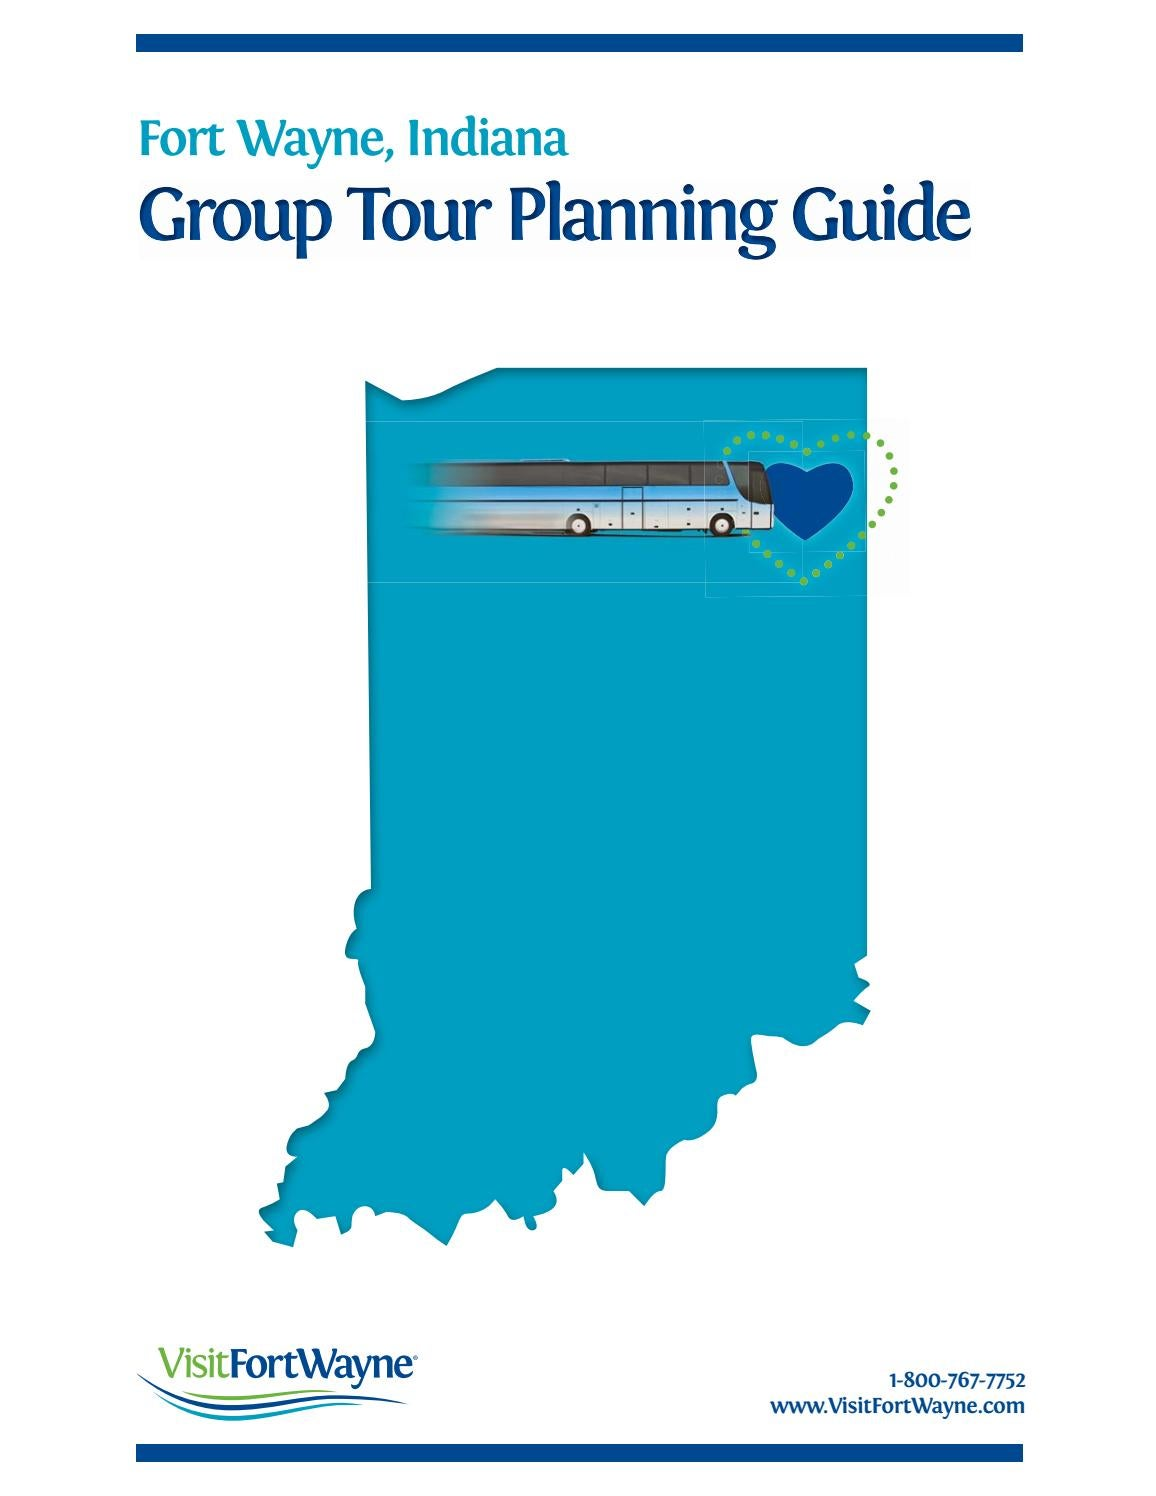 2016 Fort Wayne Group Tour Planning Guide by Visit Fort Wayne - issuu